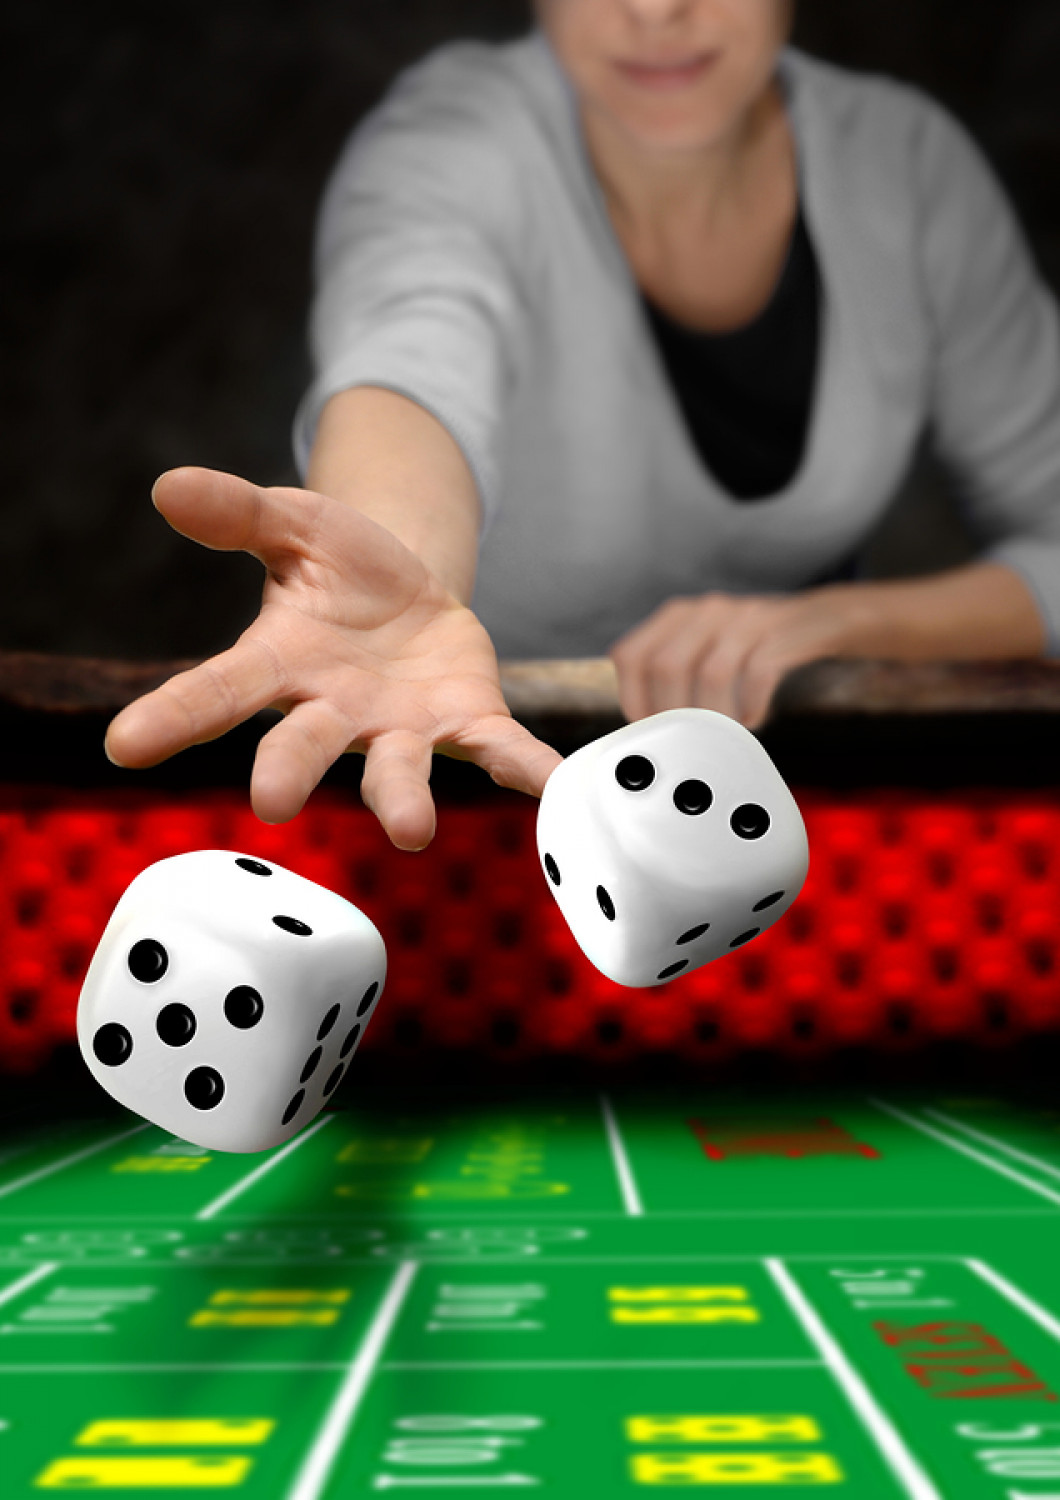 Are you unsure how to end your gambling?